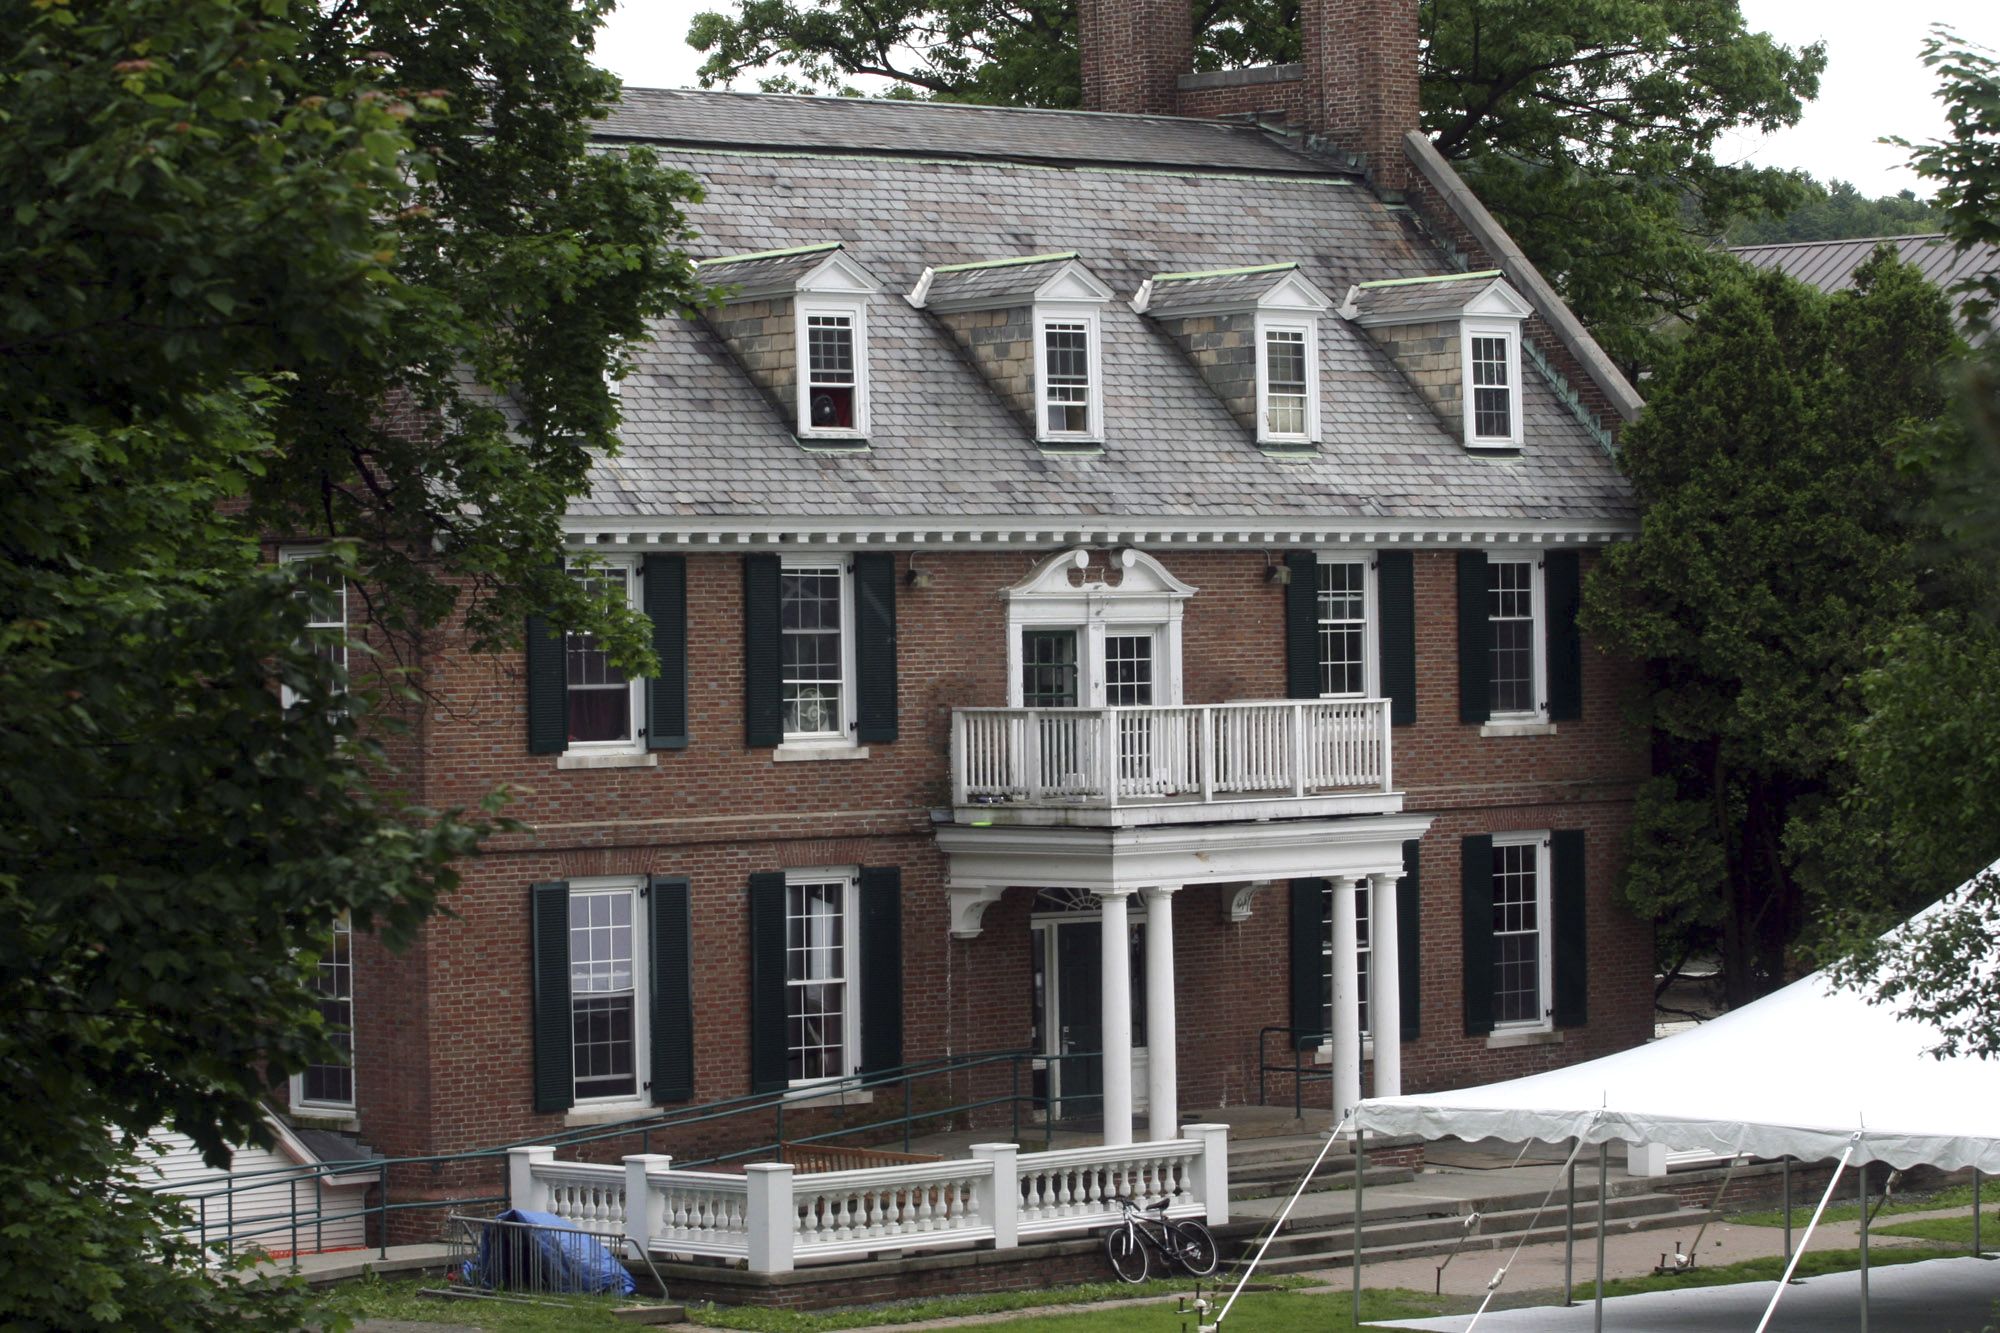 The Alpha Delta fraternity at Dartmouth College in Hanover, N.H. on June 9, 2006.